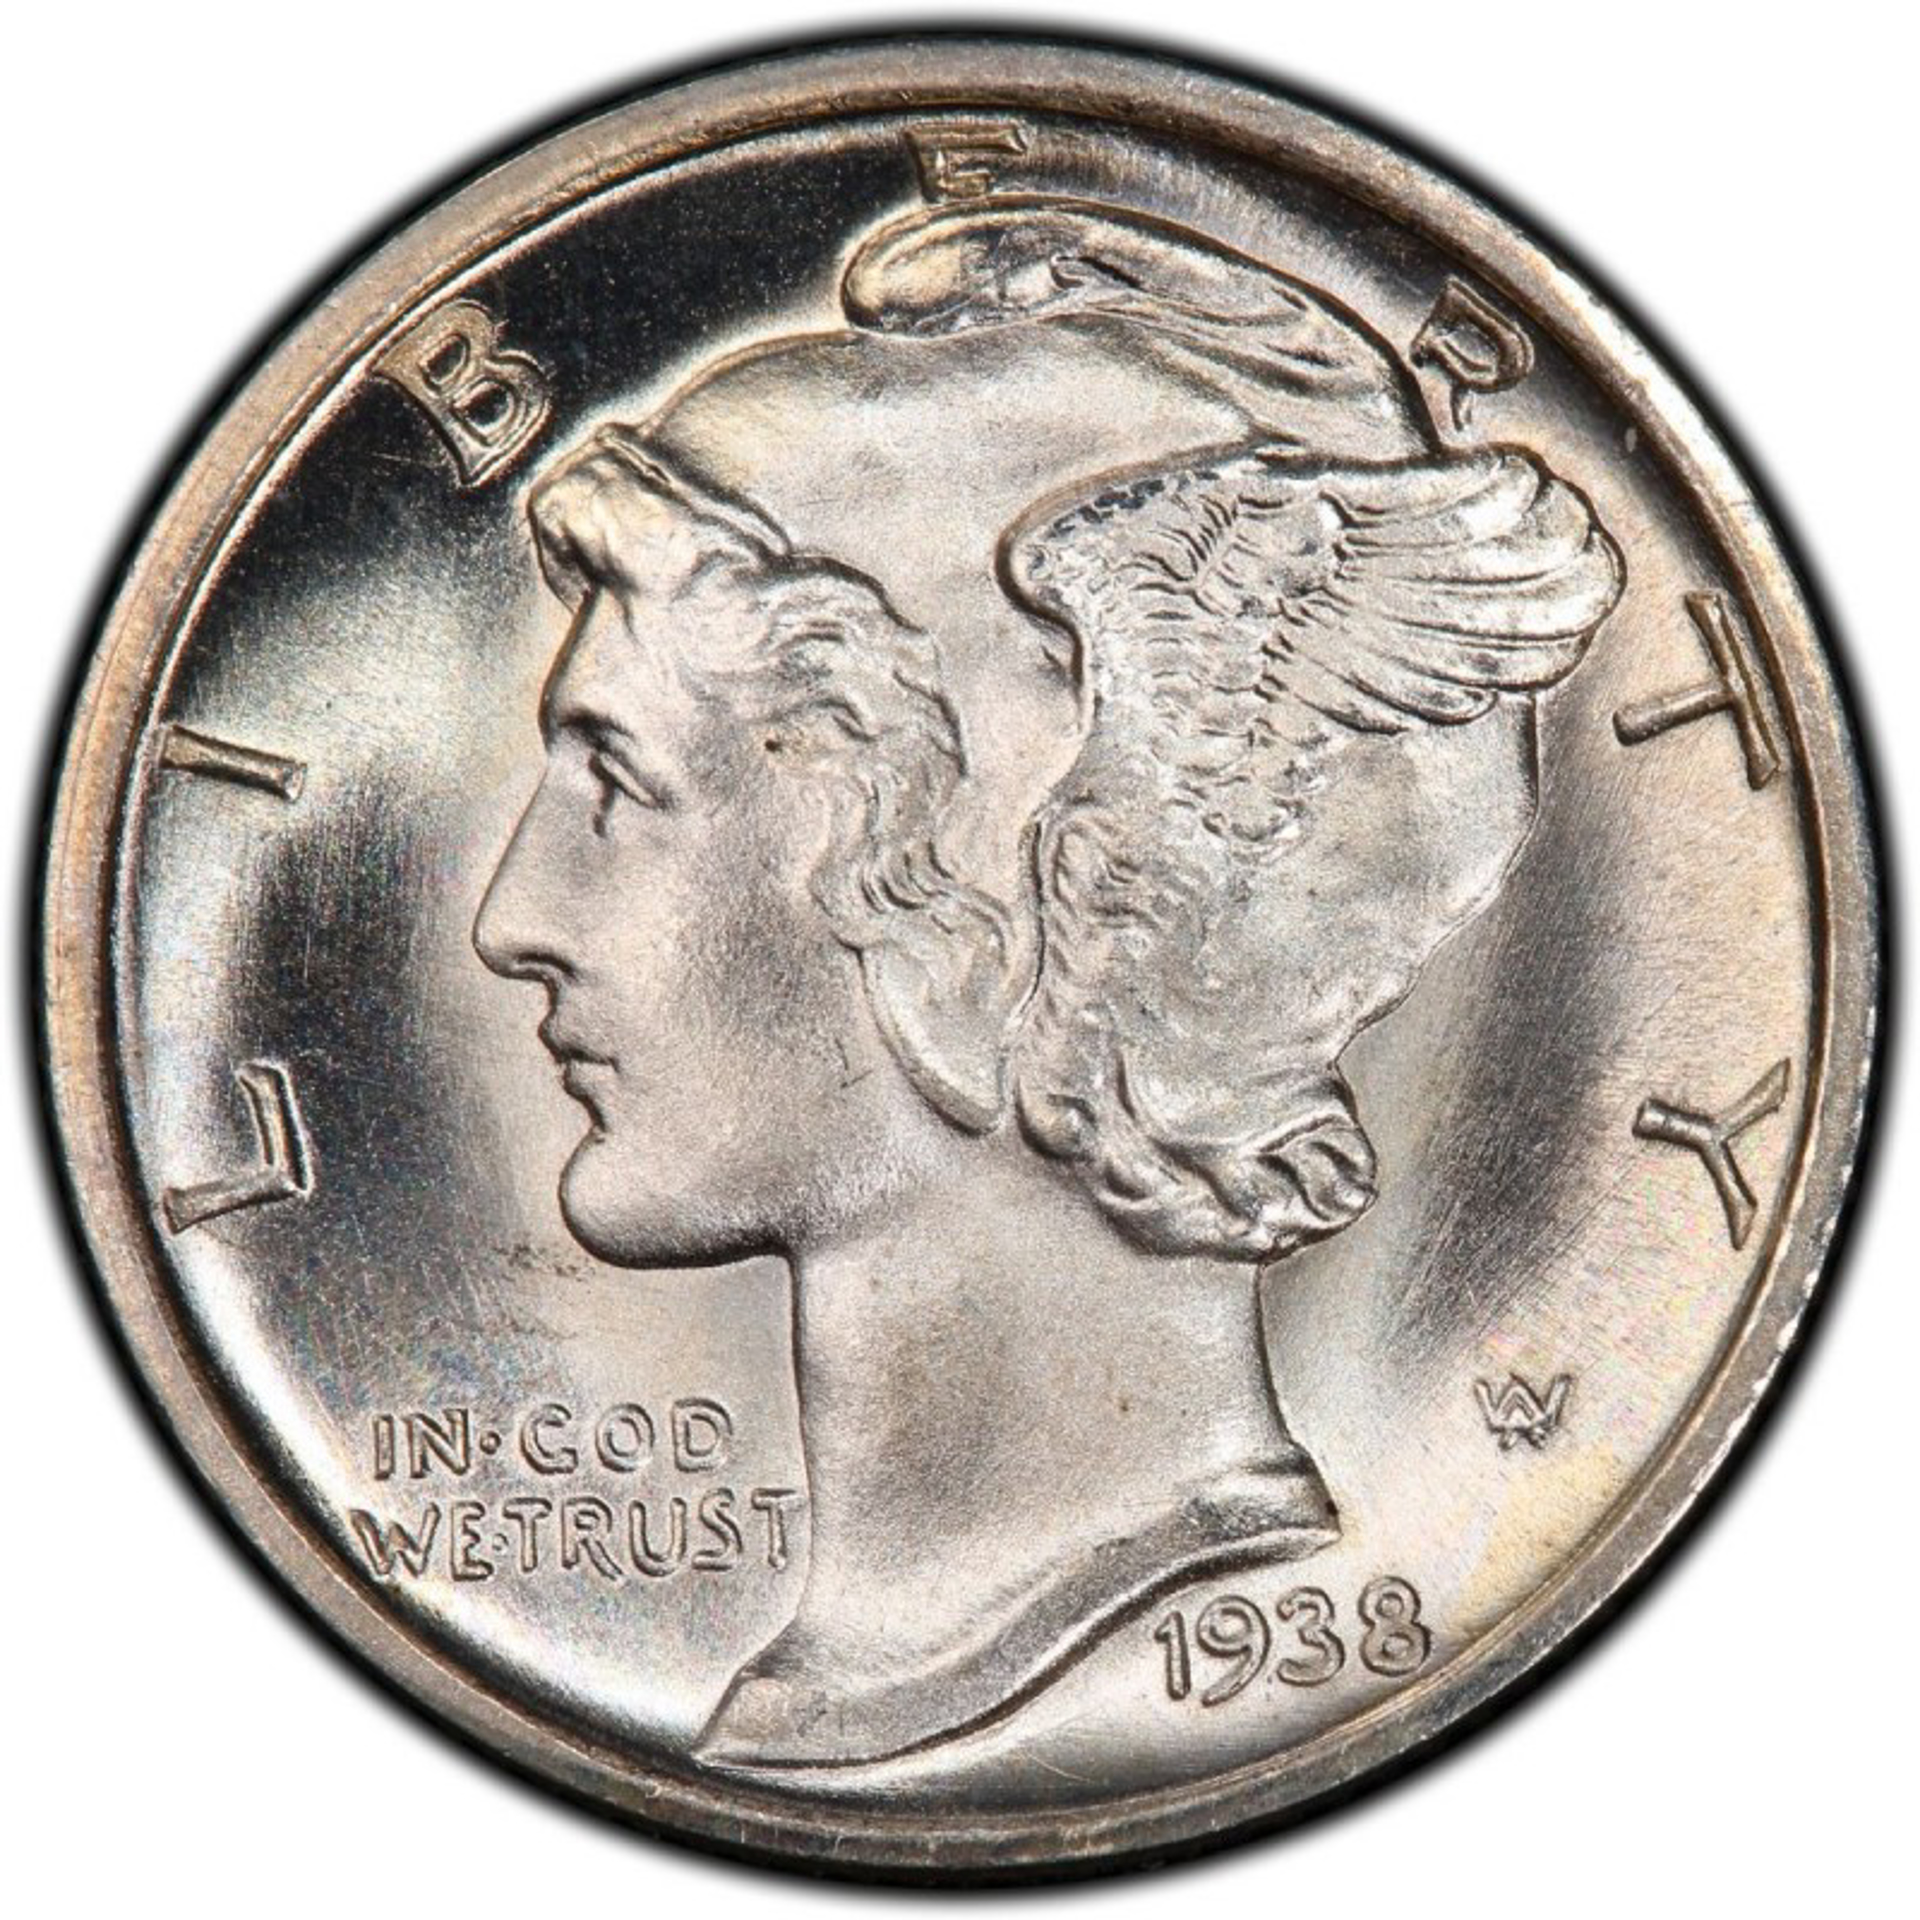 Liberty In God We Trust - Mercury Dime by Peter Max